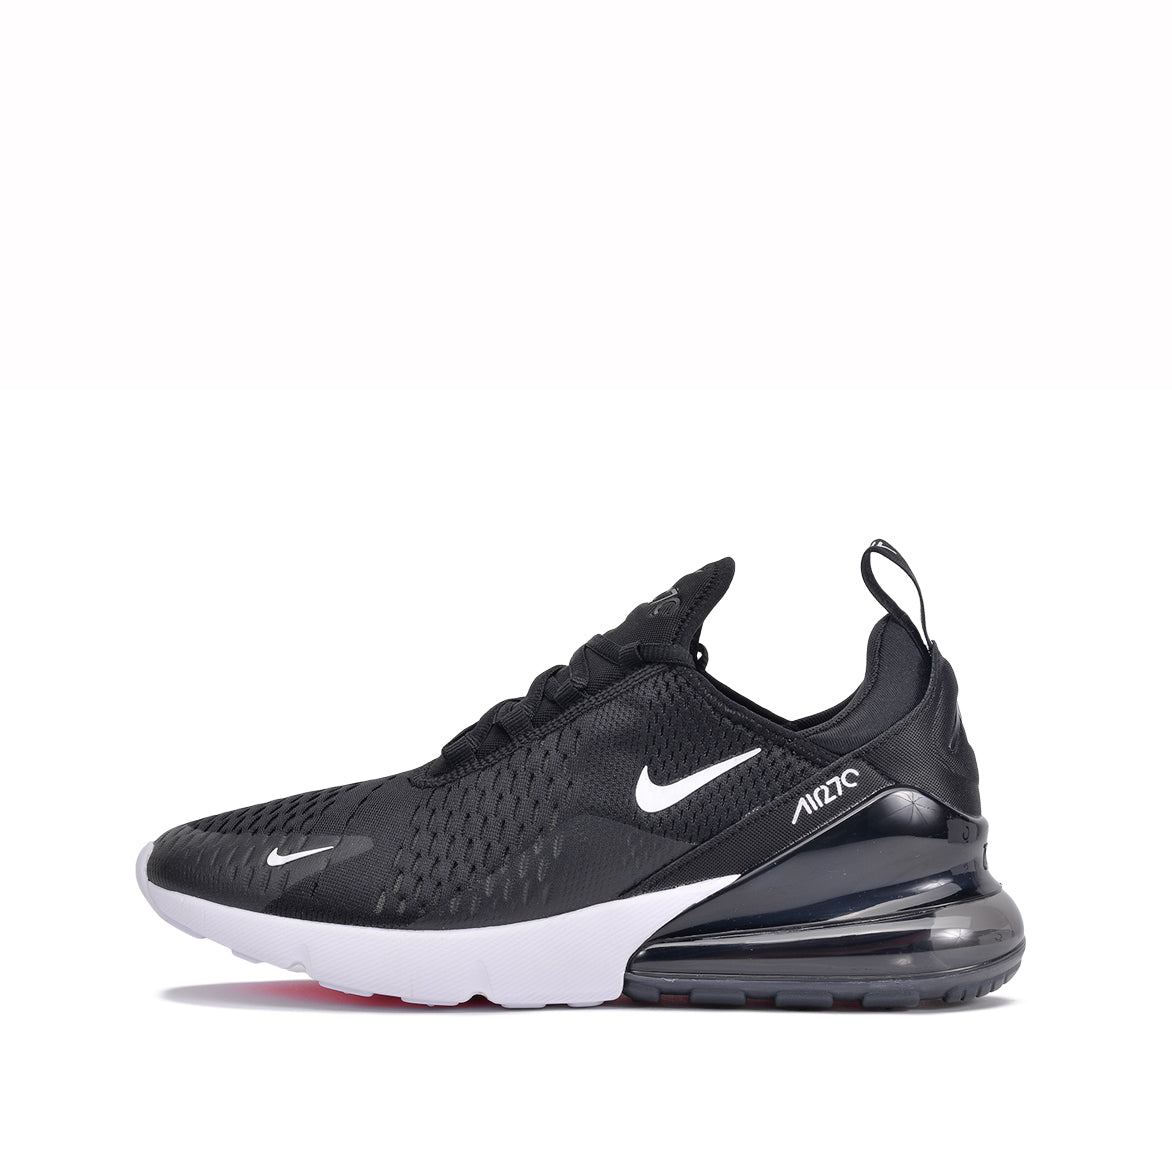 pretty nice 008db 7f4d4 AIR MAX 270 (GS) - BLACK   WHITE   City Blue